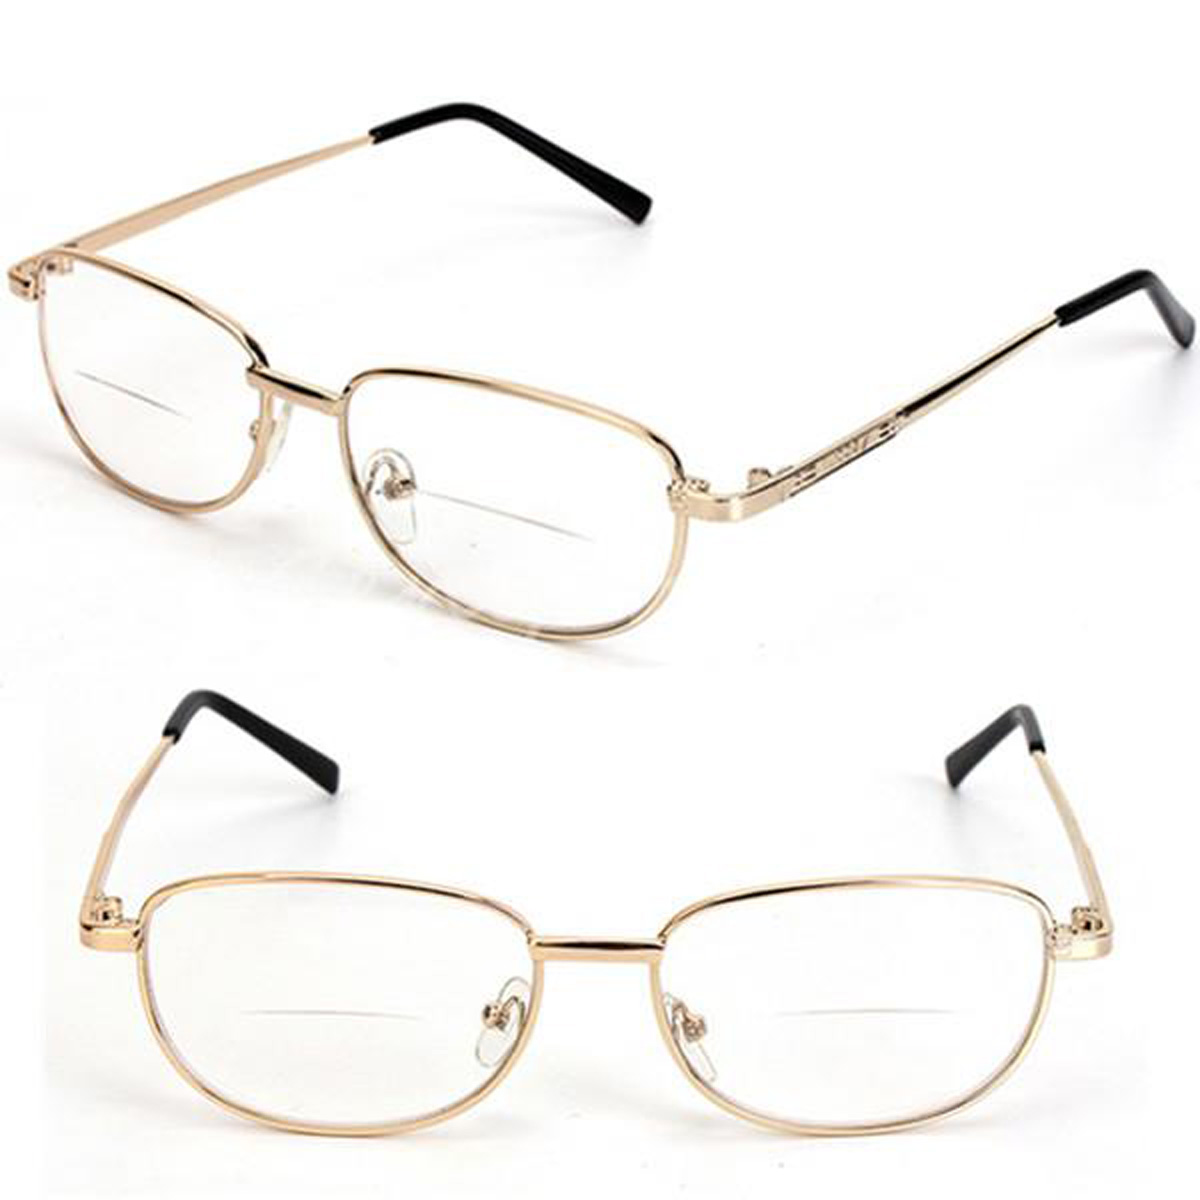 Glasses Frames In Gold : Fashion Bifocal Lens Rimmed Mens Reading Glasses Gold ...